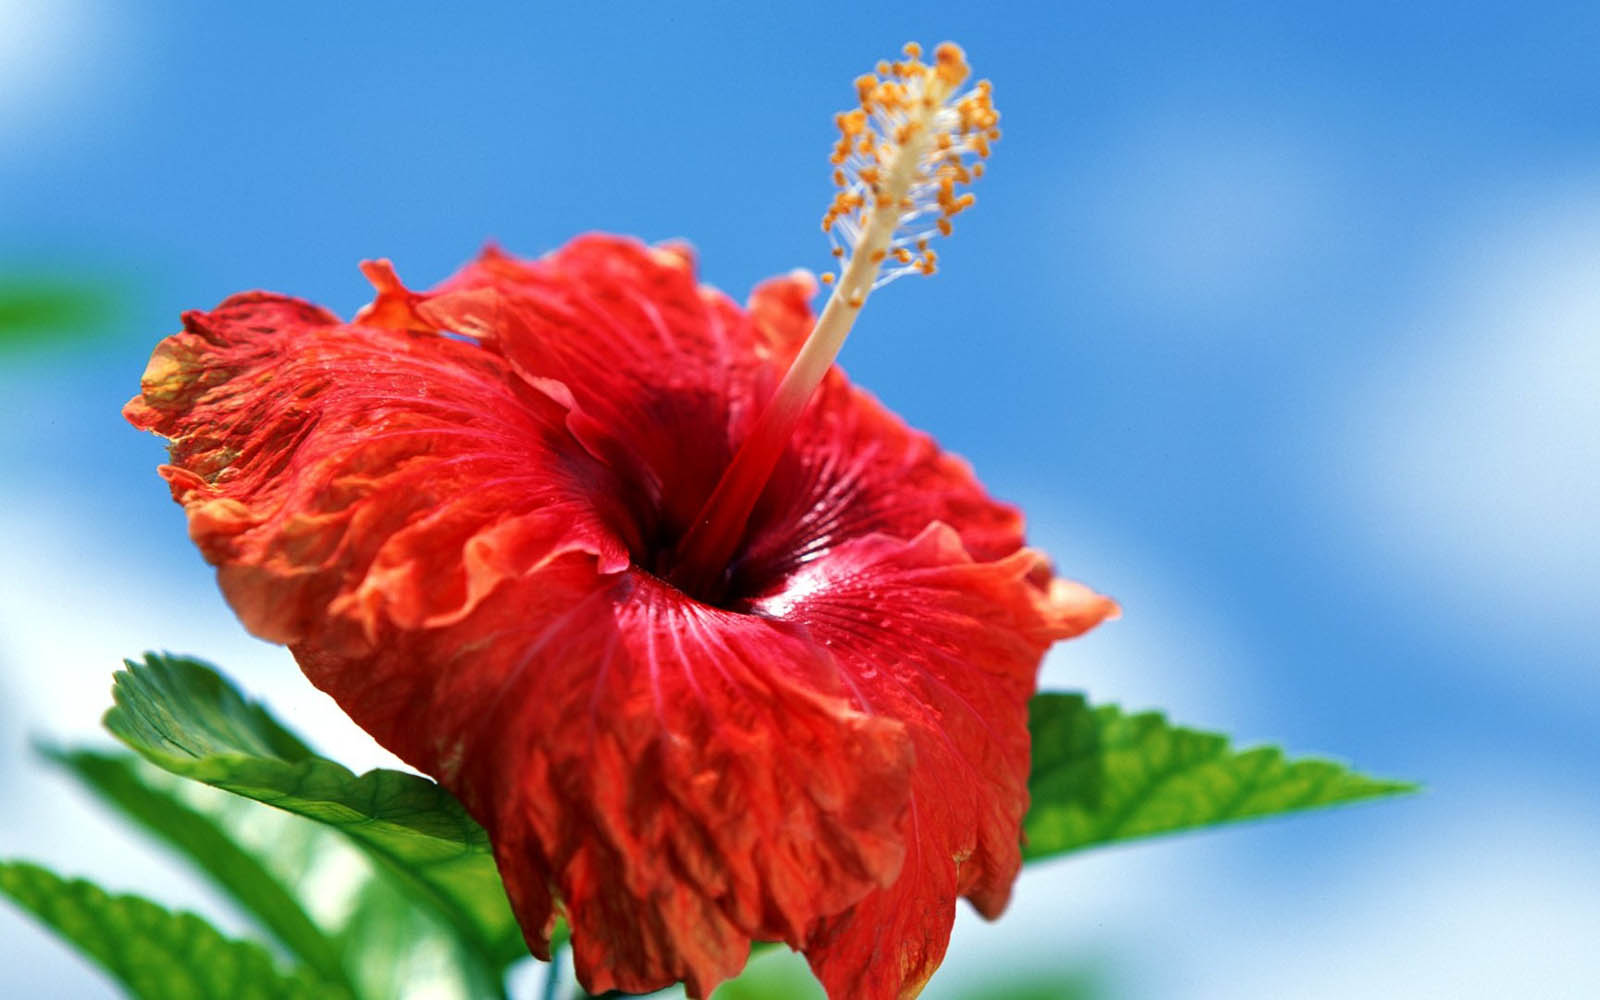 Flower Wallpaper | Flowers Wallpapers: Hibiscus Flowers Wallpapers ...